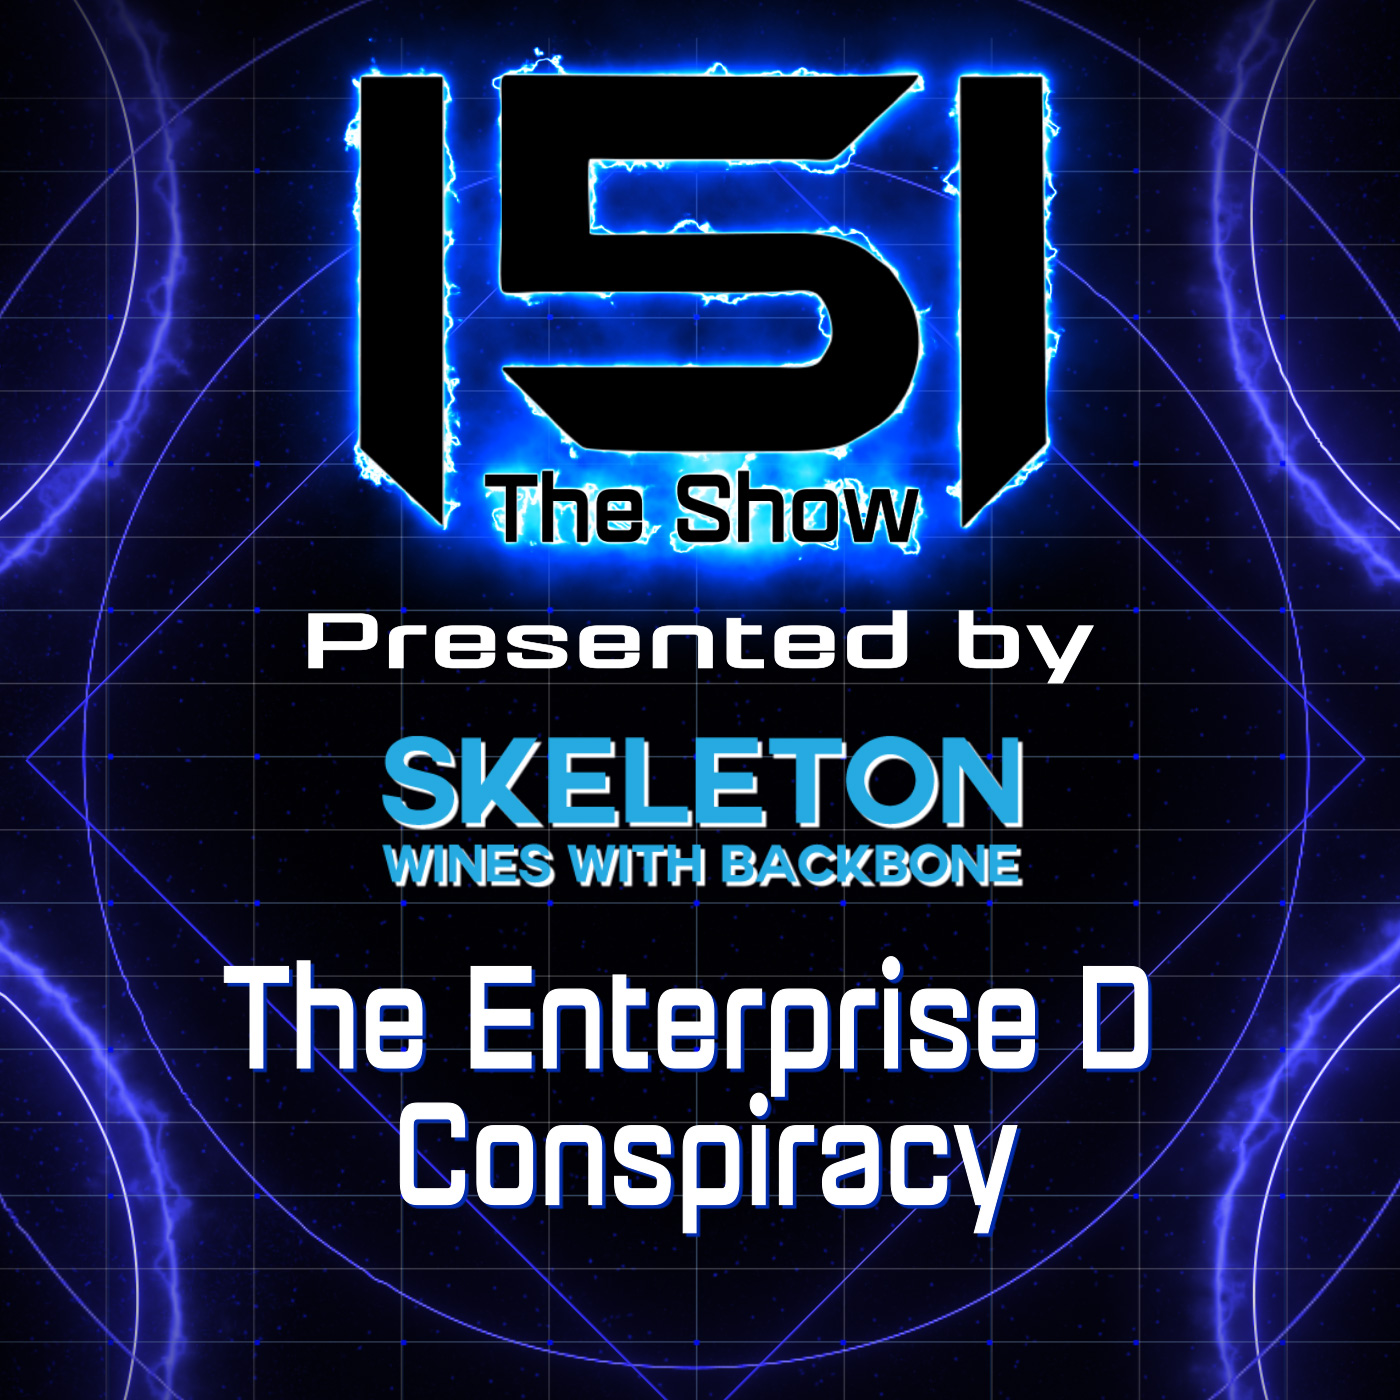 The Enterprise D Conspiracy